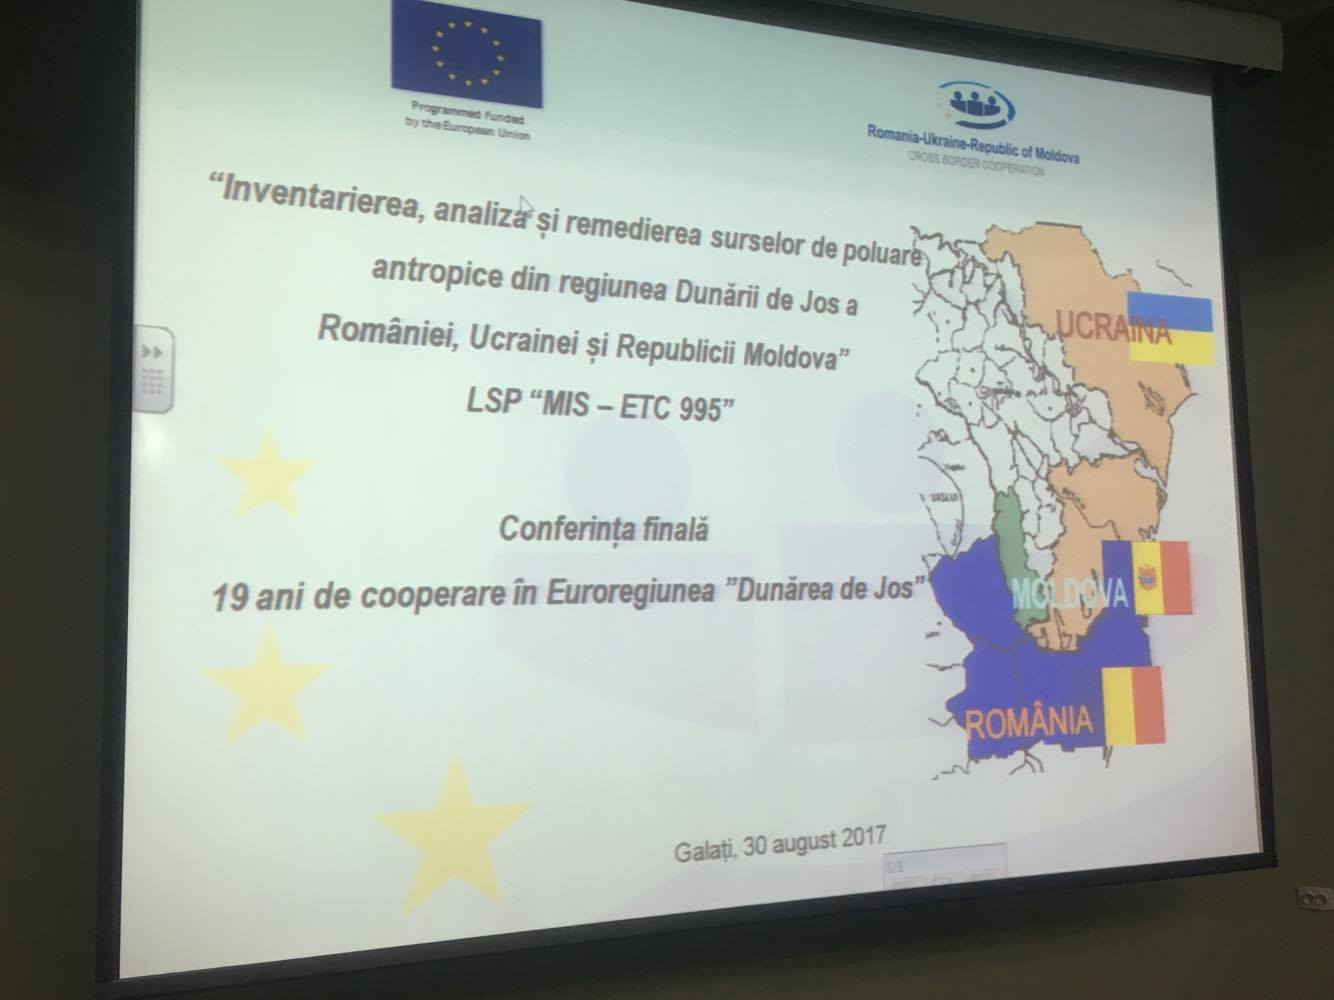 "<a class=""amazingslider-posttitle-link"" href=""http://www.euroregiune.org/en/international-final-conference-project-inventory-analysis-remediation-anthropogenic-pollution-sources-lower-danube-region-romania-ukraine-republic-moldova/"" target=""_self"">International Final Conference on the project ""Inventory, Analysis and Remediation of Anthropogenic Pollution Sources in the Lower Danube Region of Romania, Ukraine and the Republic of Moldova""</a>"